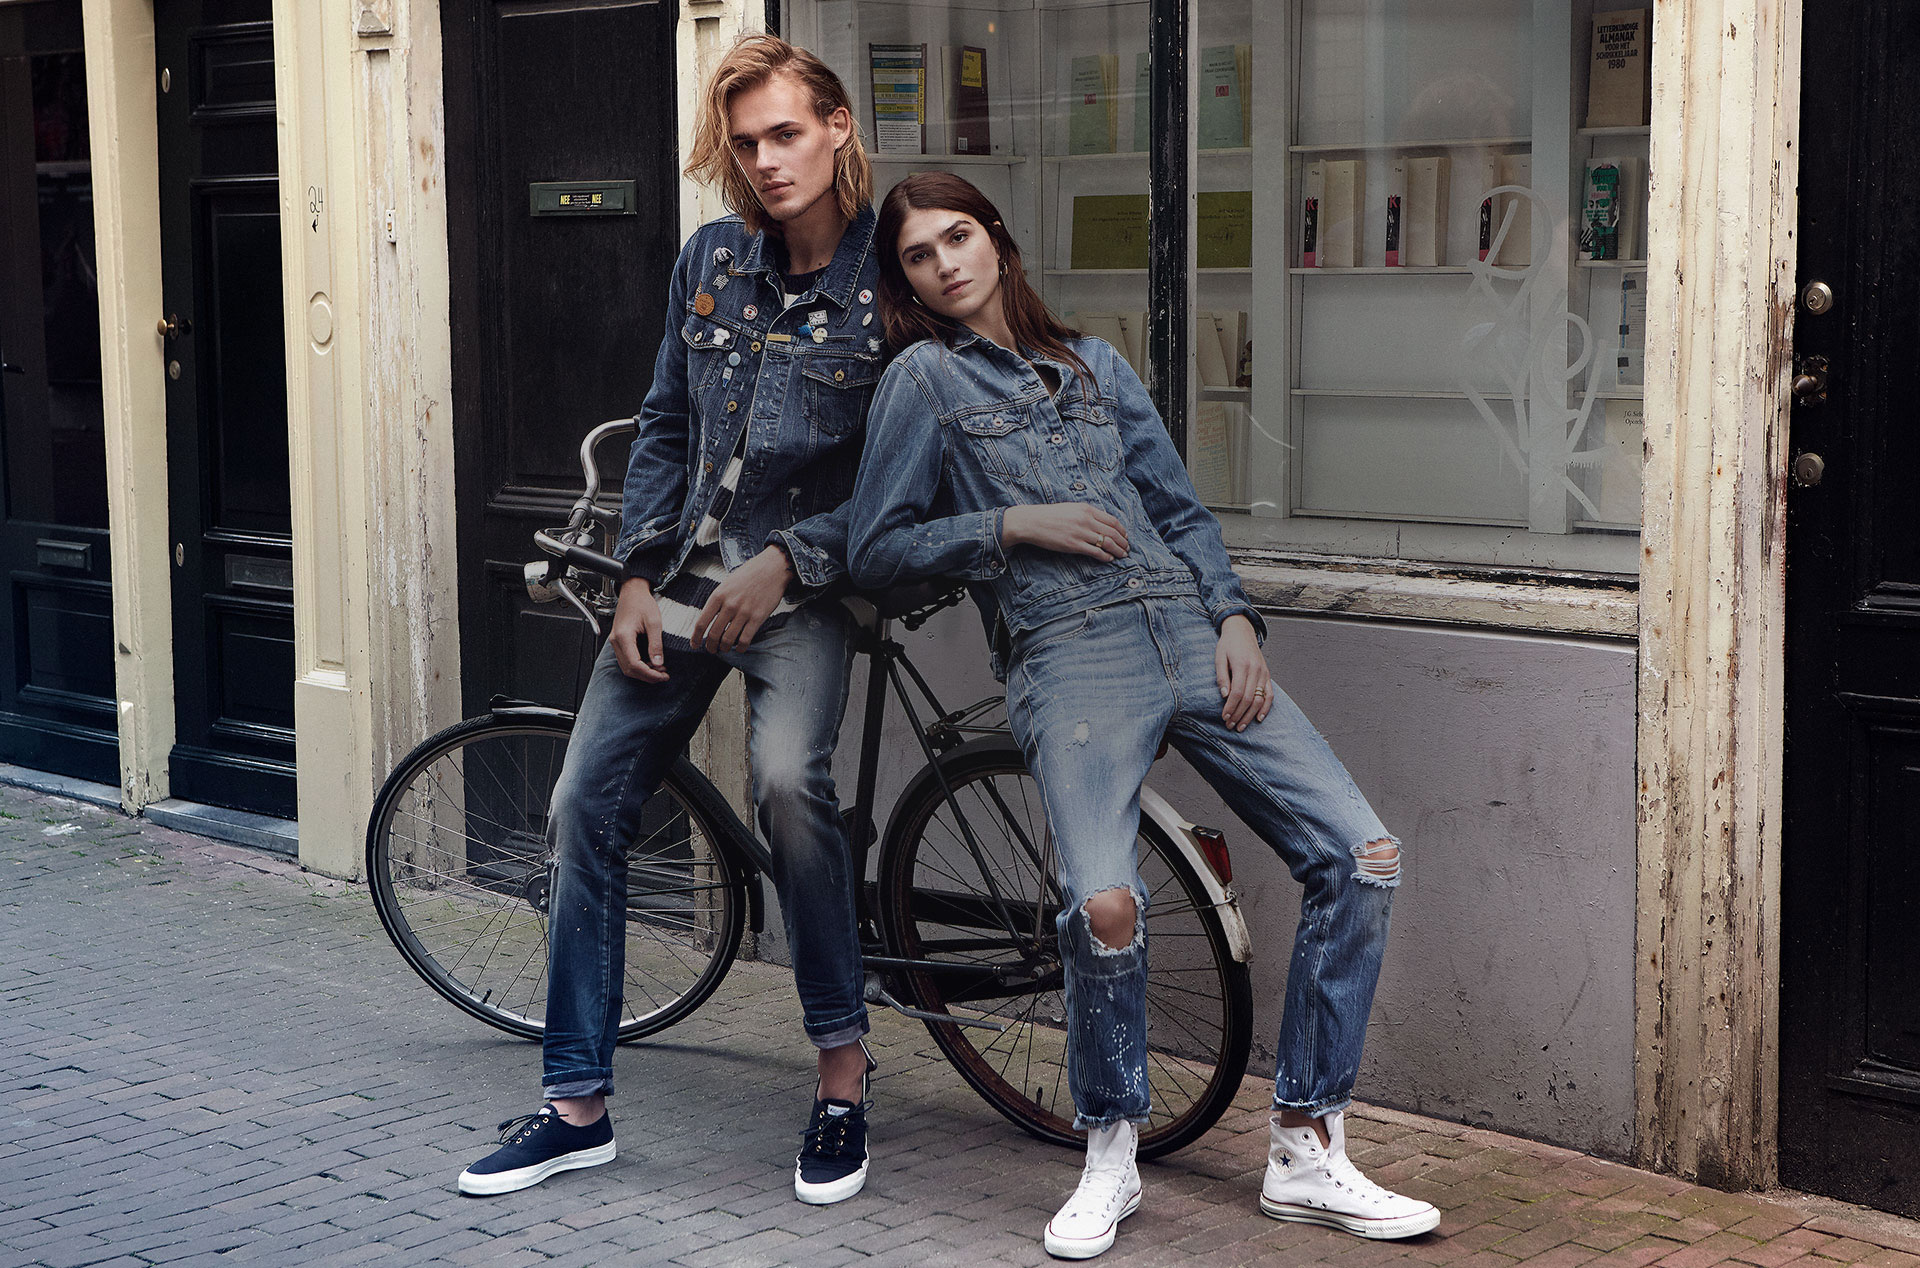 Amstrdams blauw spring summer 2018 collection women and men